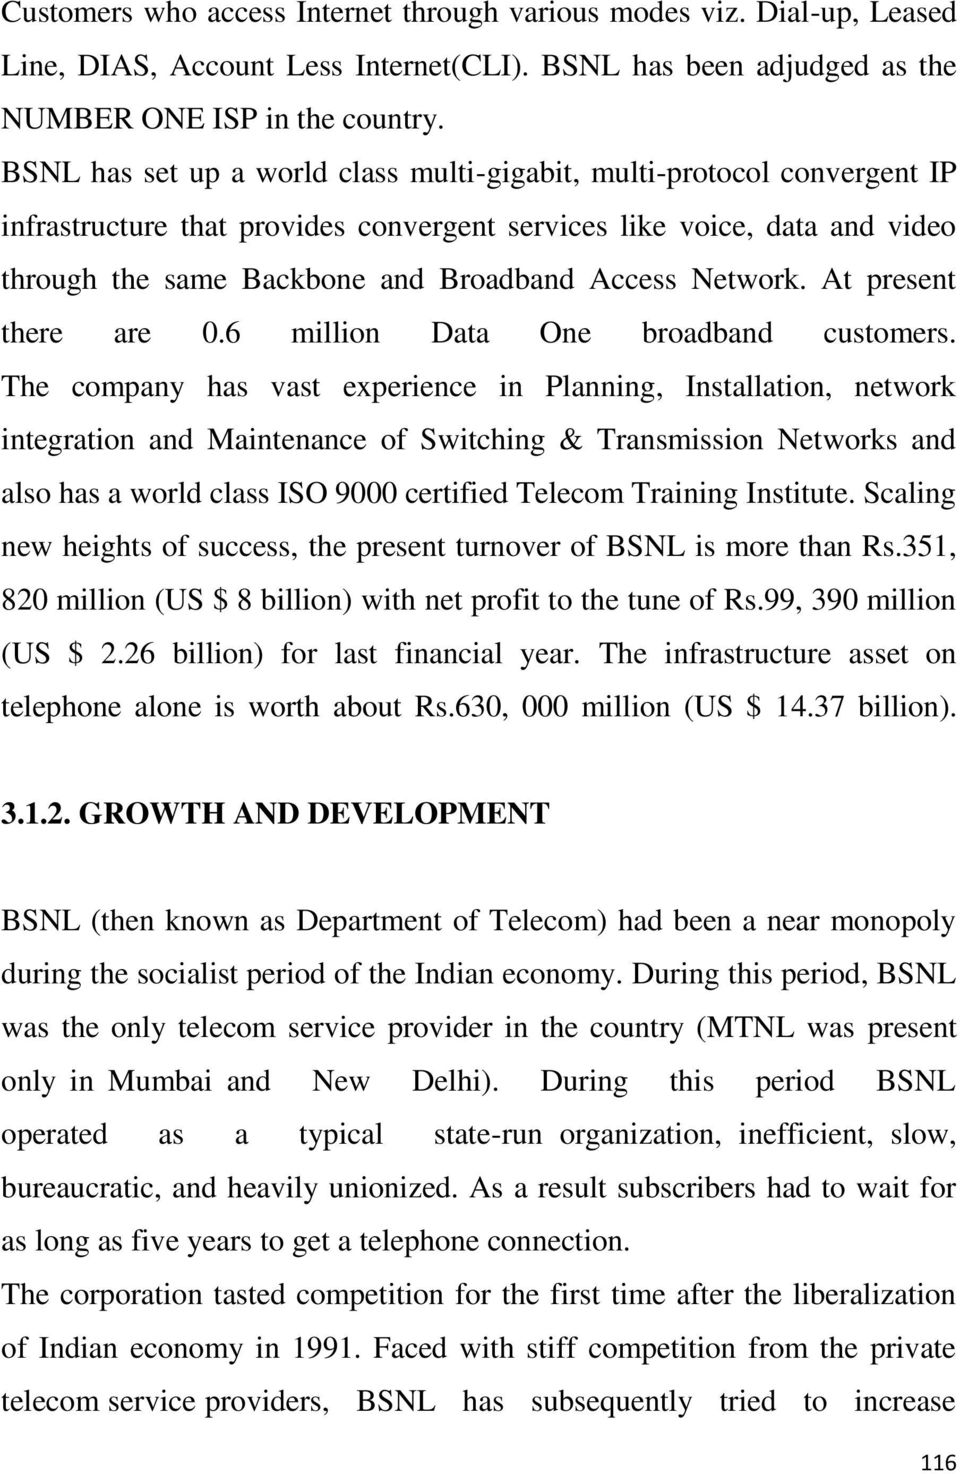 Network. At present there are 0.6 million Data One broadband customers.